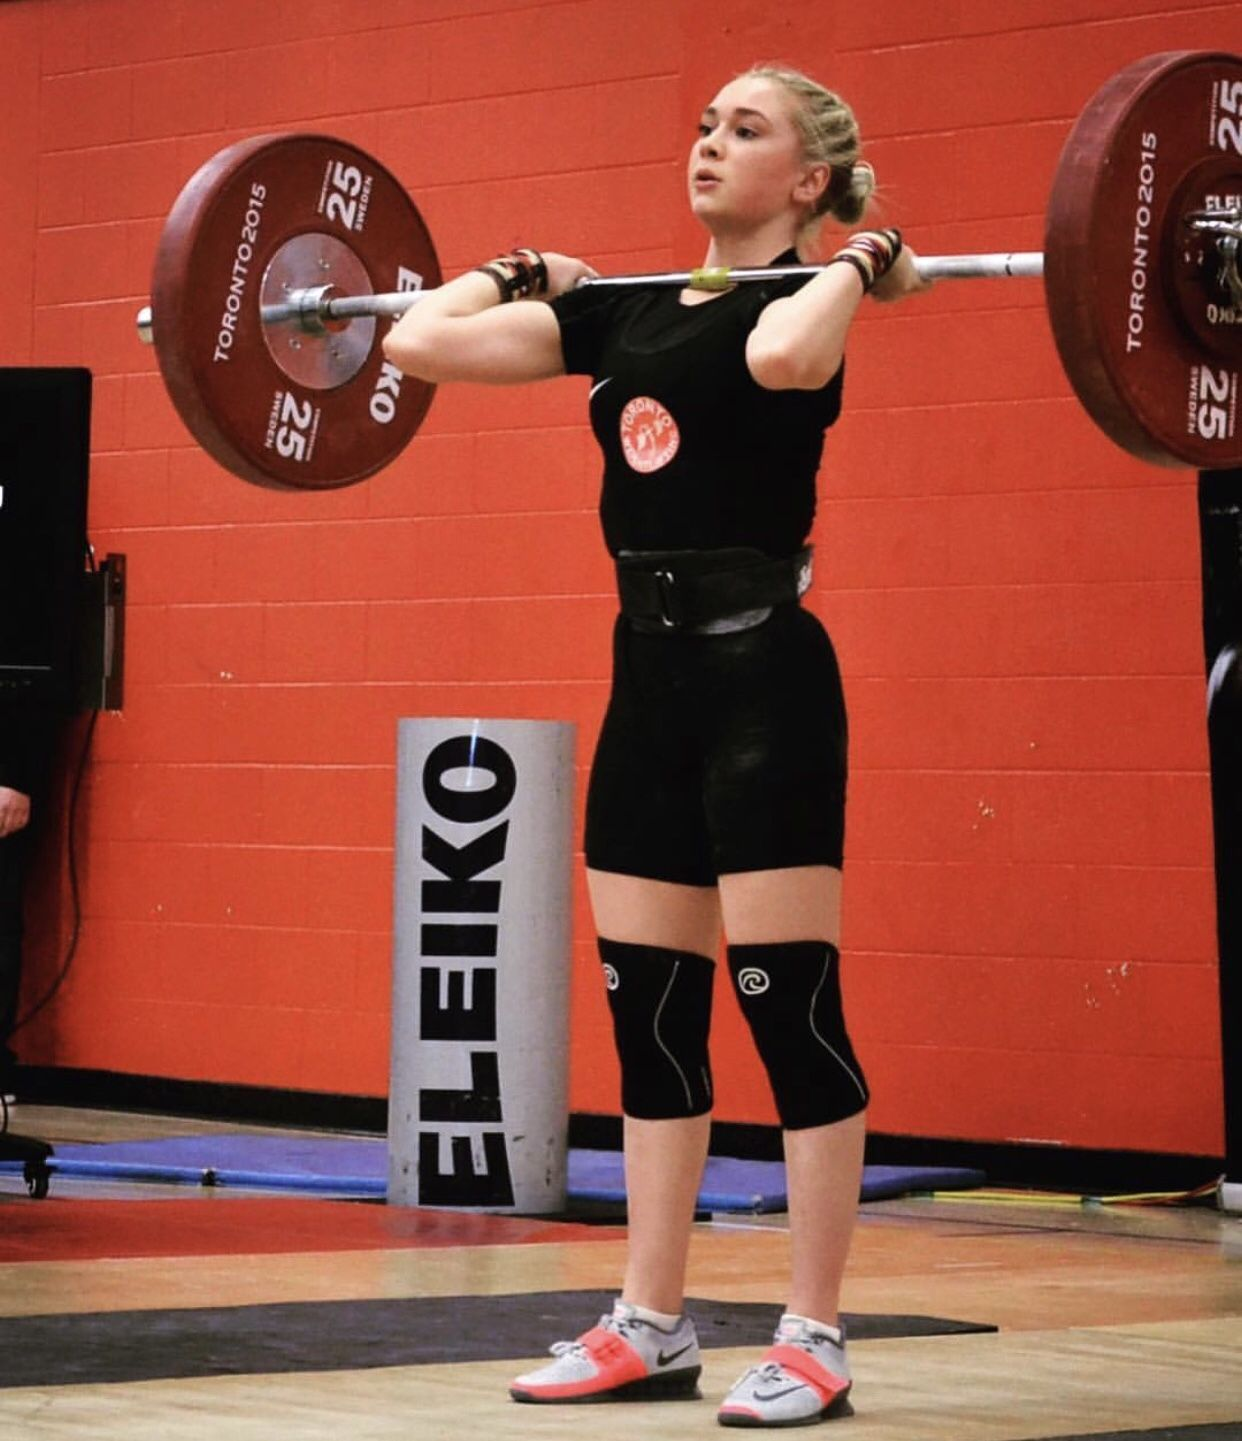 Pin On Olympic Weightlifting